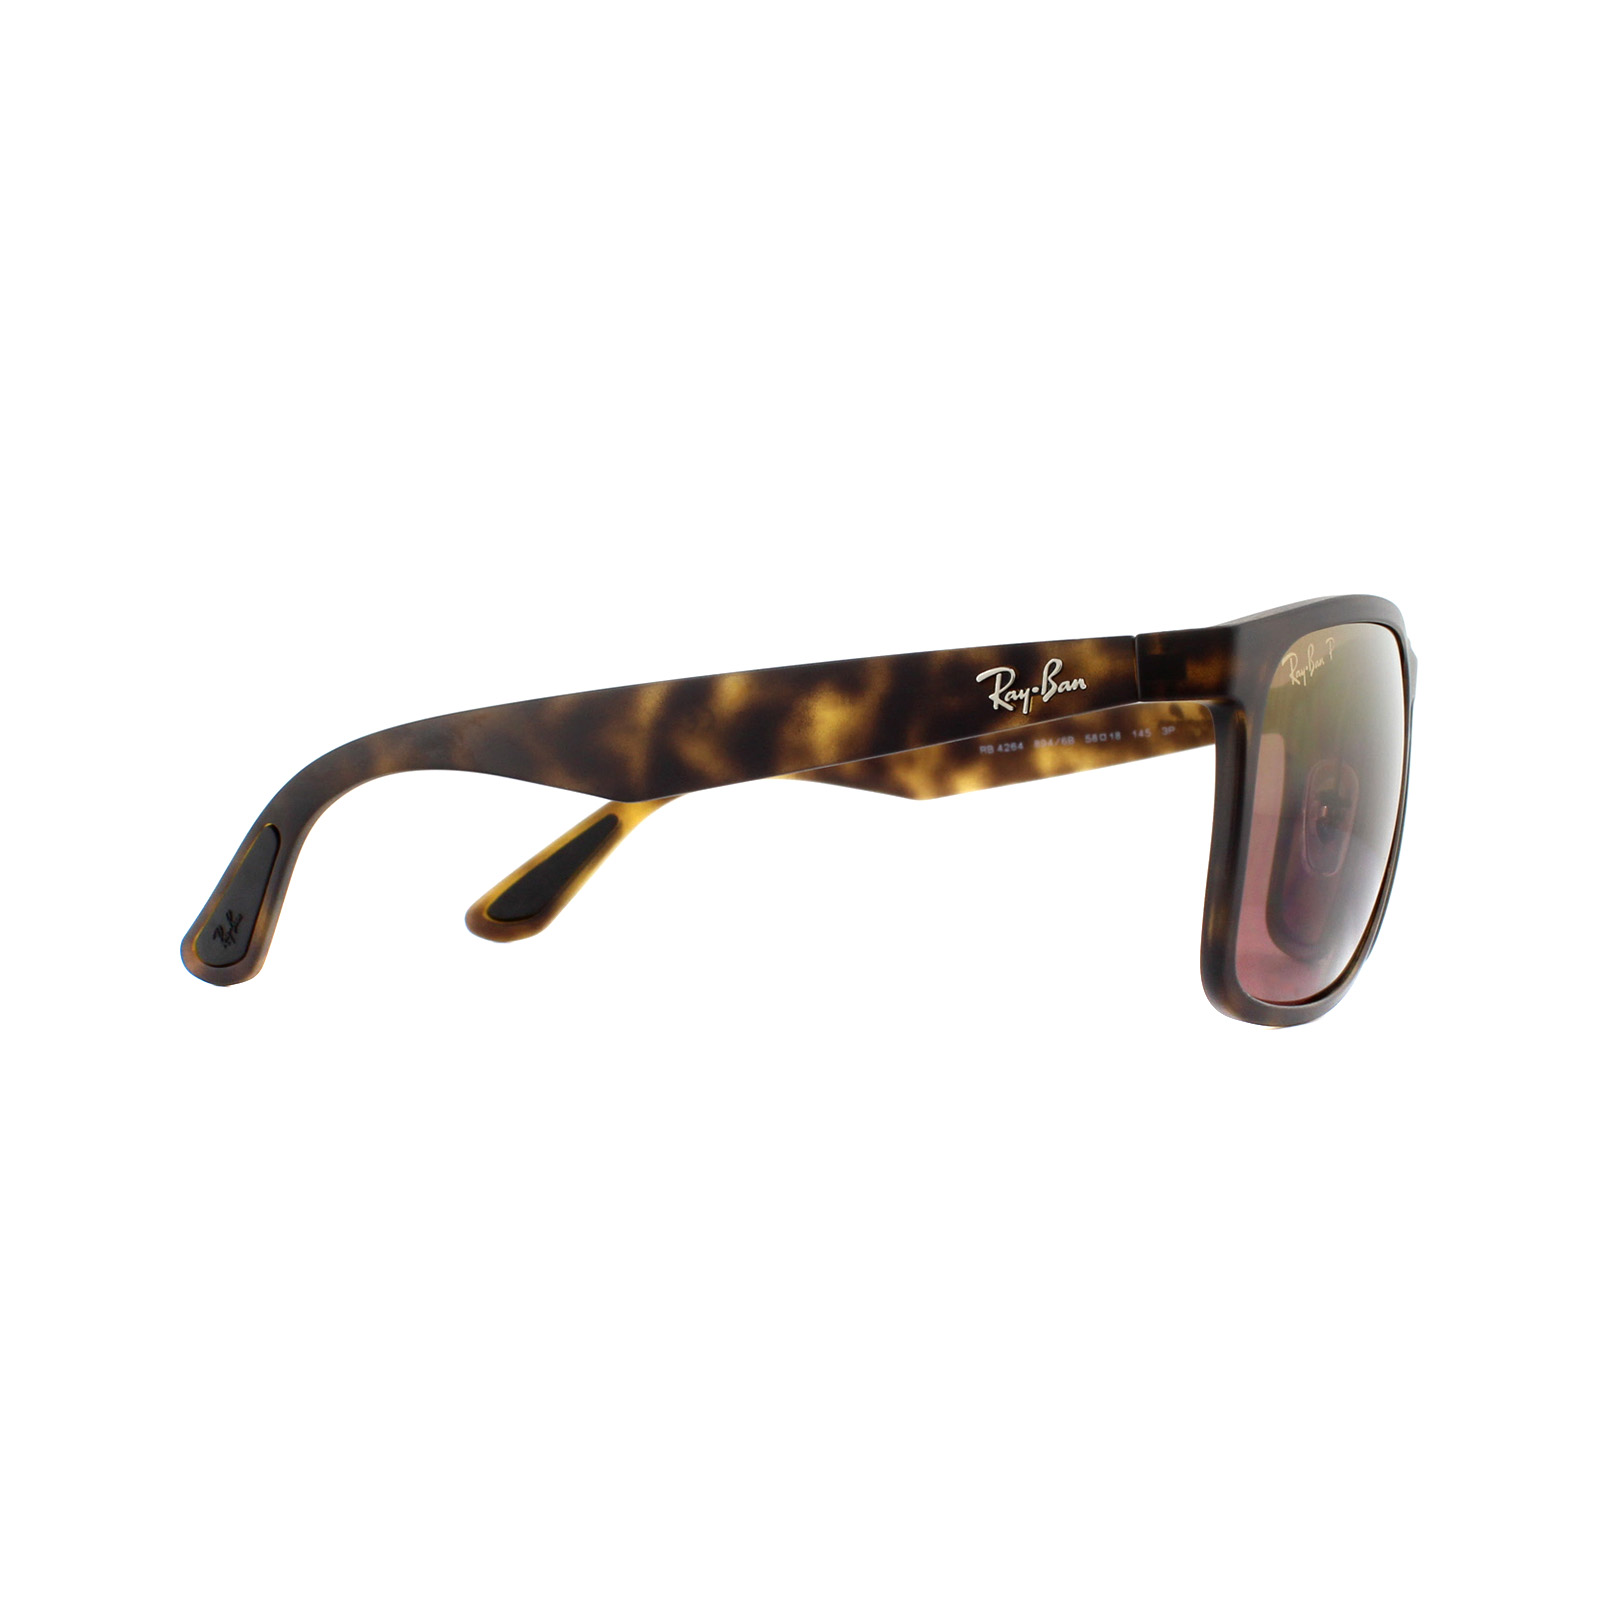 4d7db371123 Sentinel Ray-Ban Sunglasses RB4264 894 6B Matte Havana Brown Polarized  Mirror Chromance